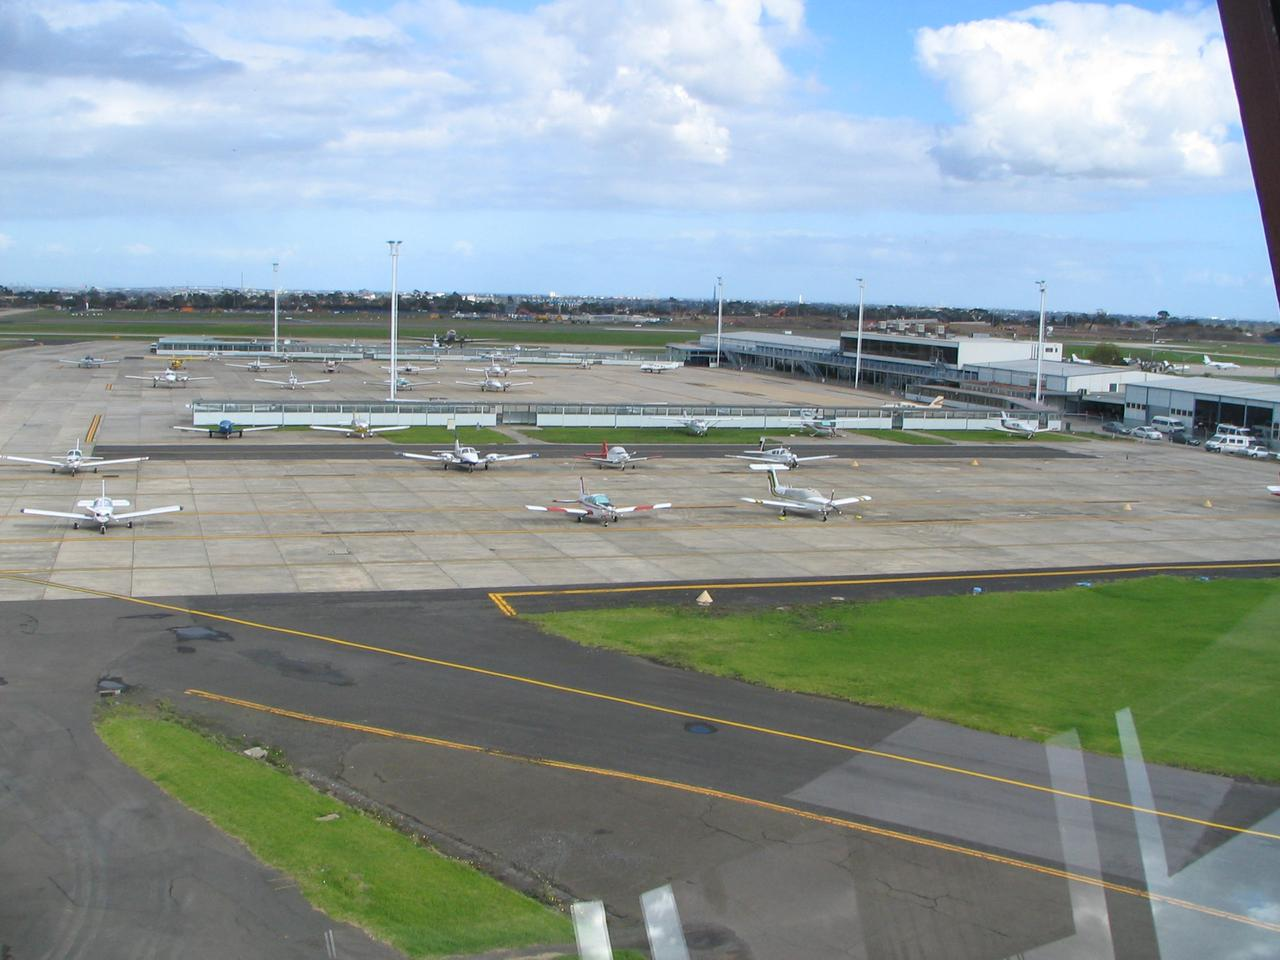 Real procedures at Essendon Airport | Steve's Blog